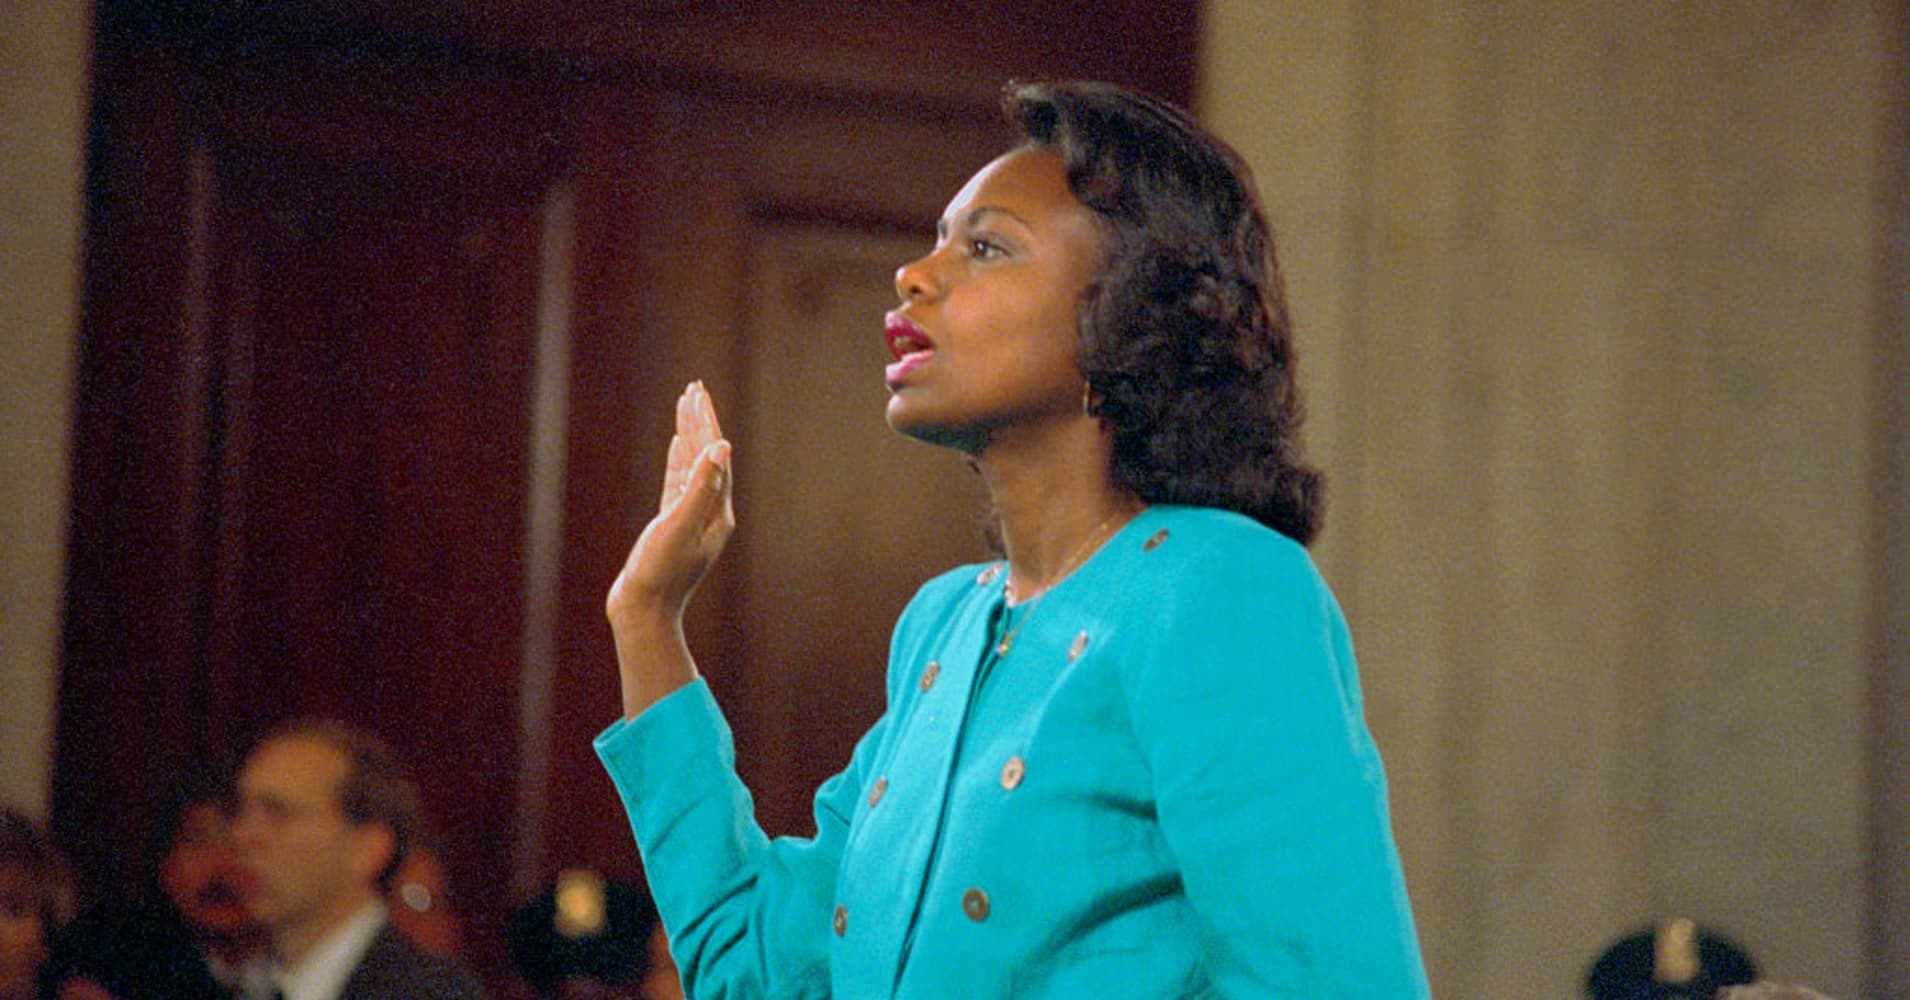 Professor Anita Hill is sworn-in before testifying at the Senate Judiciary hearing on the Clarence Thomas Supreme Court nomination. Miss Hill testified on her charges of alleged sexual harassment by Judge Thomas.